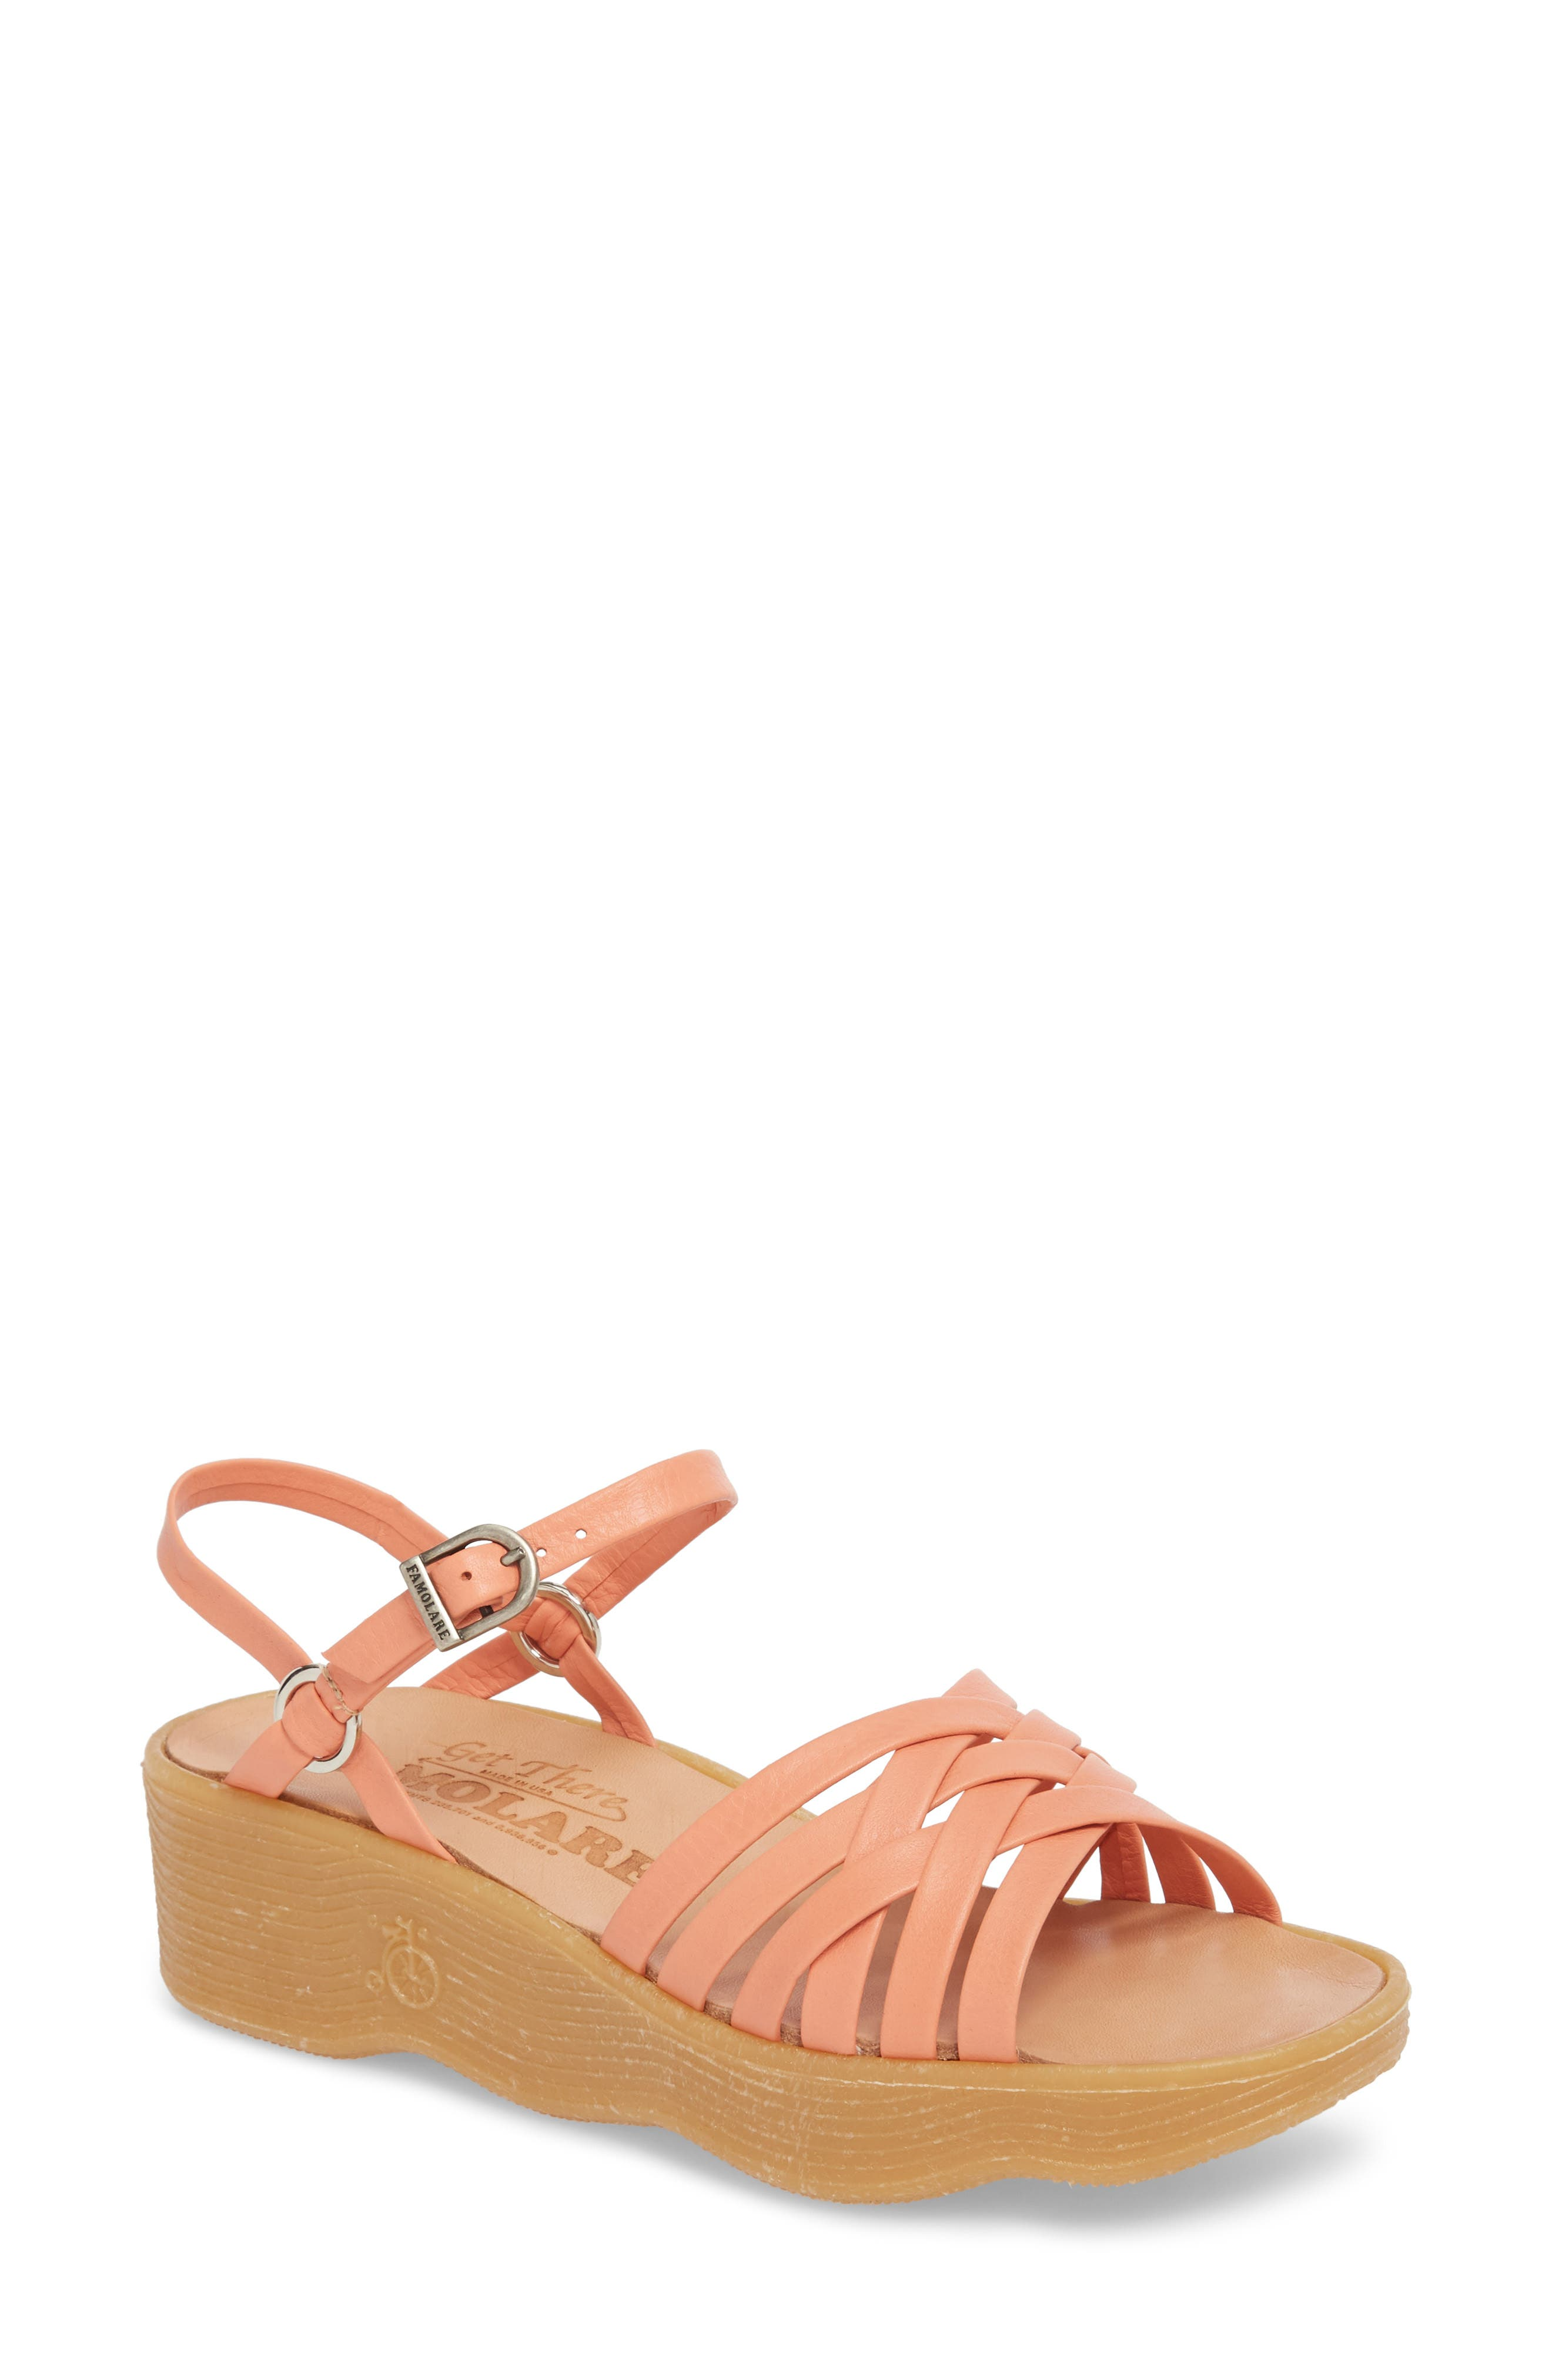 Strappy Camper Sandal,                             Main thumbnail 1, color,                             Salmon Leather